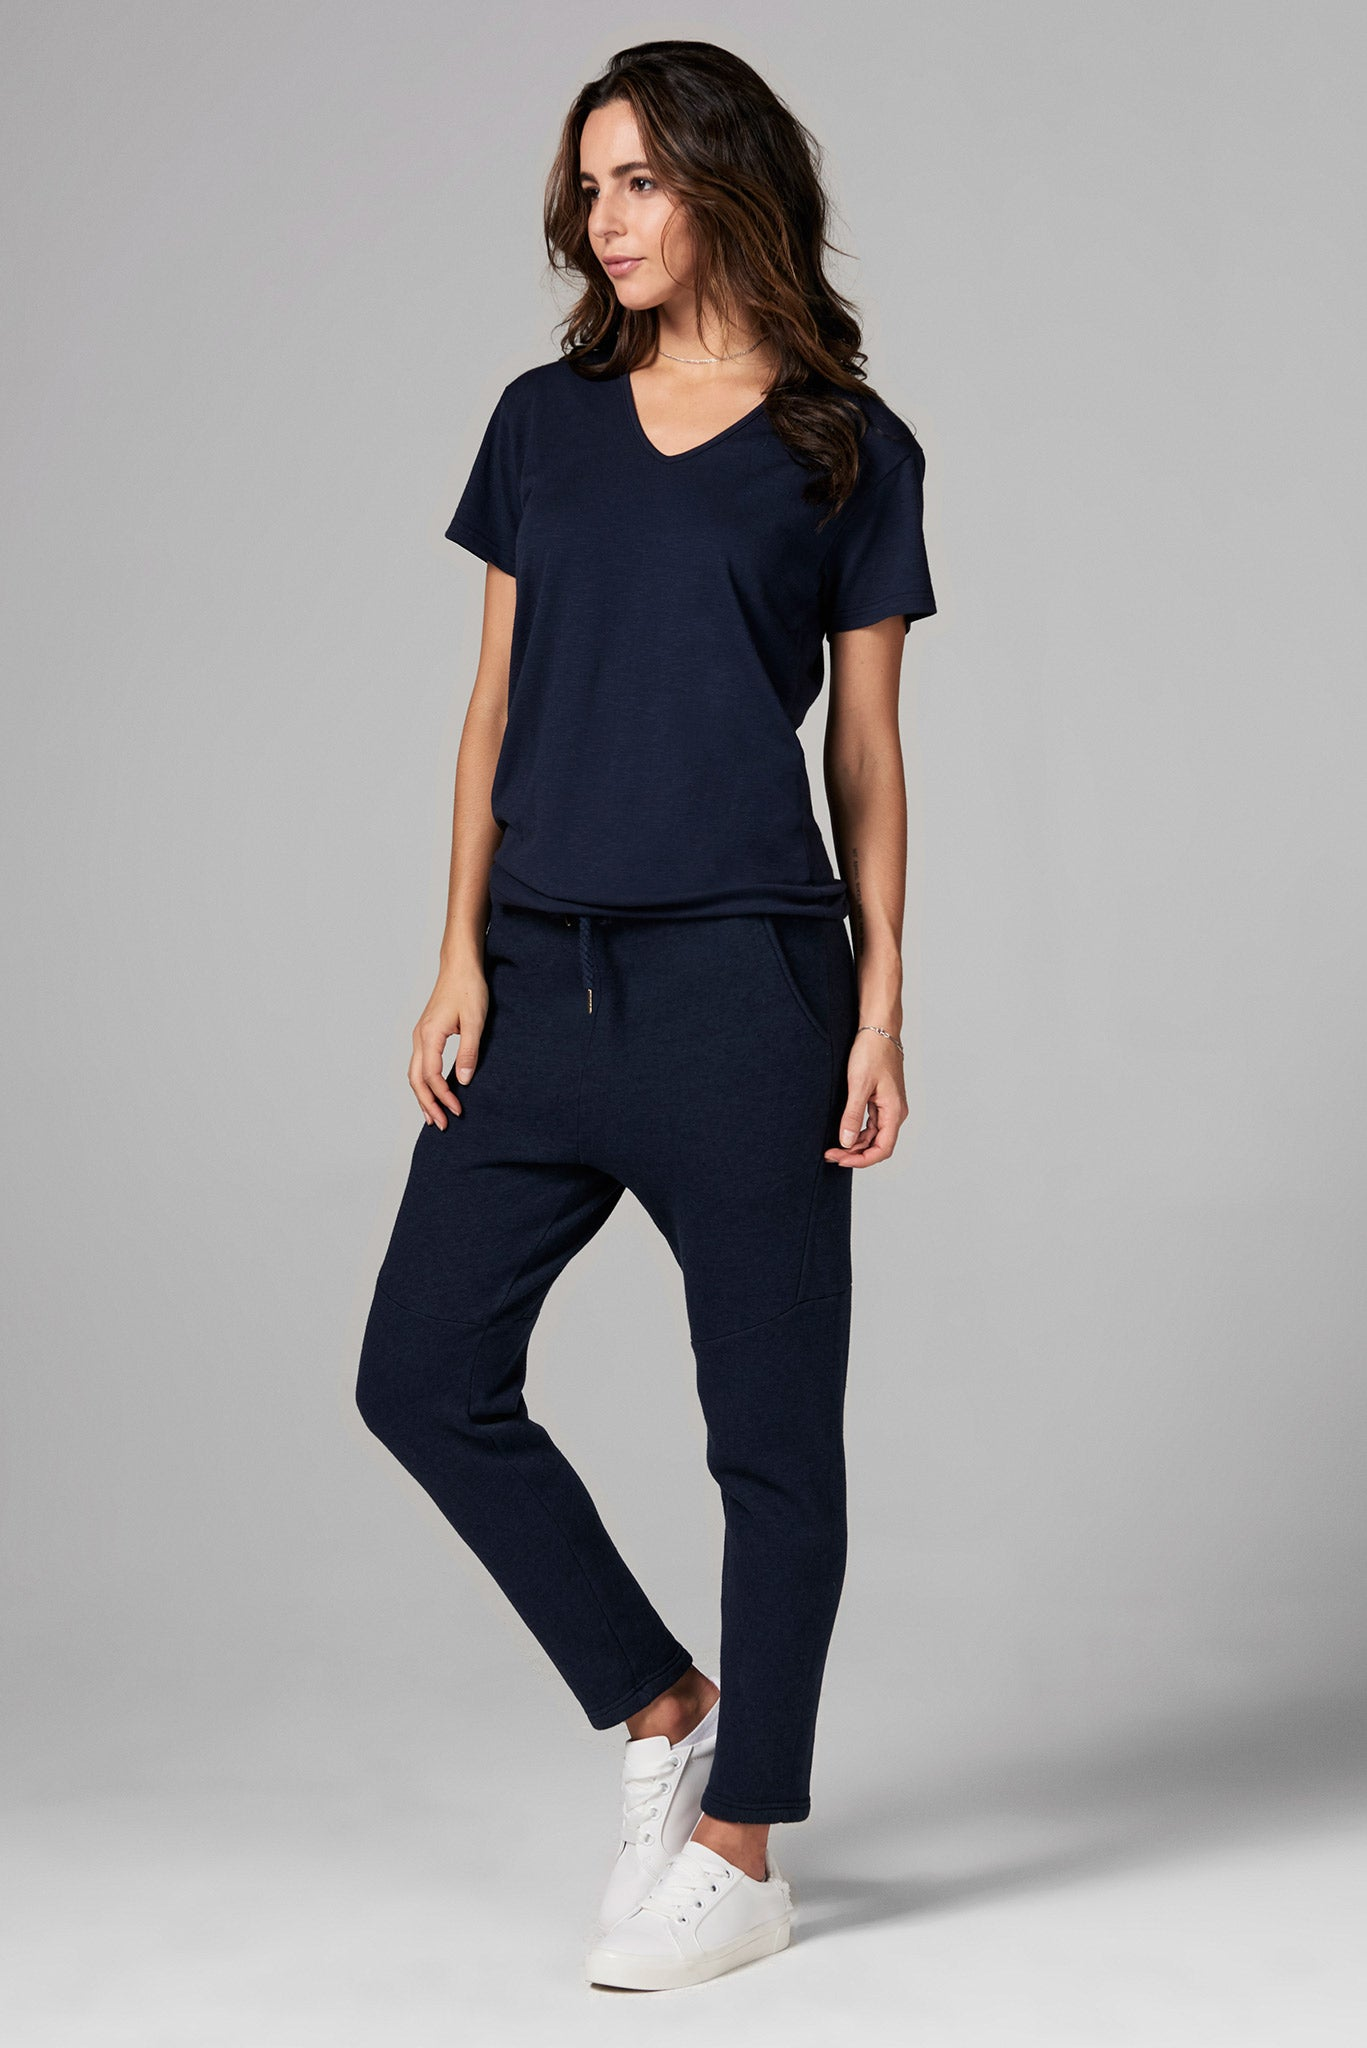 WOMEN'S SLUB V NECK TEE - NAVY